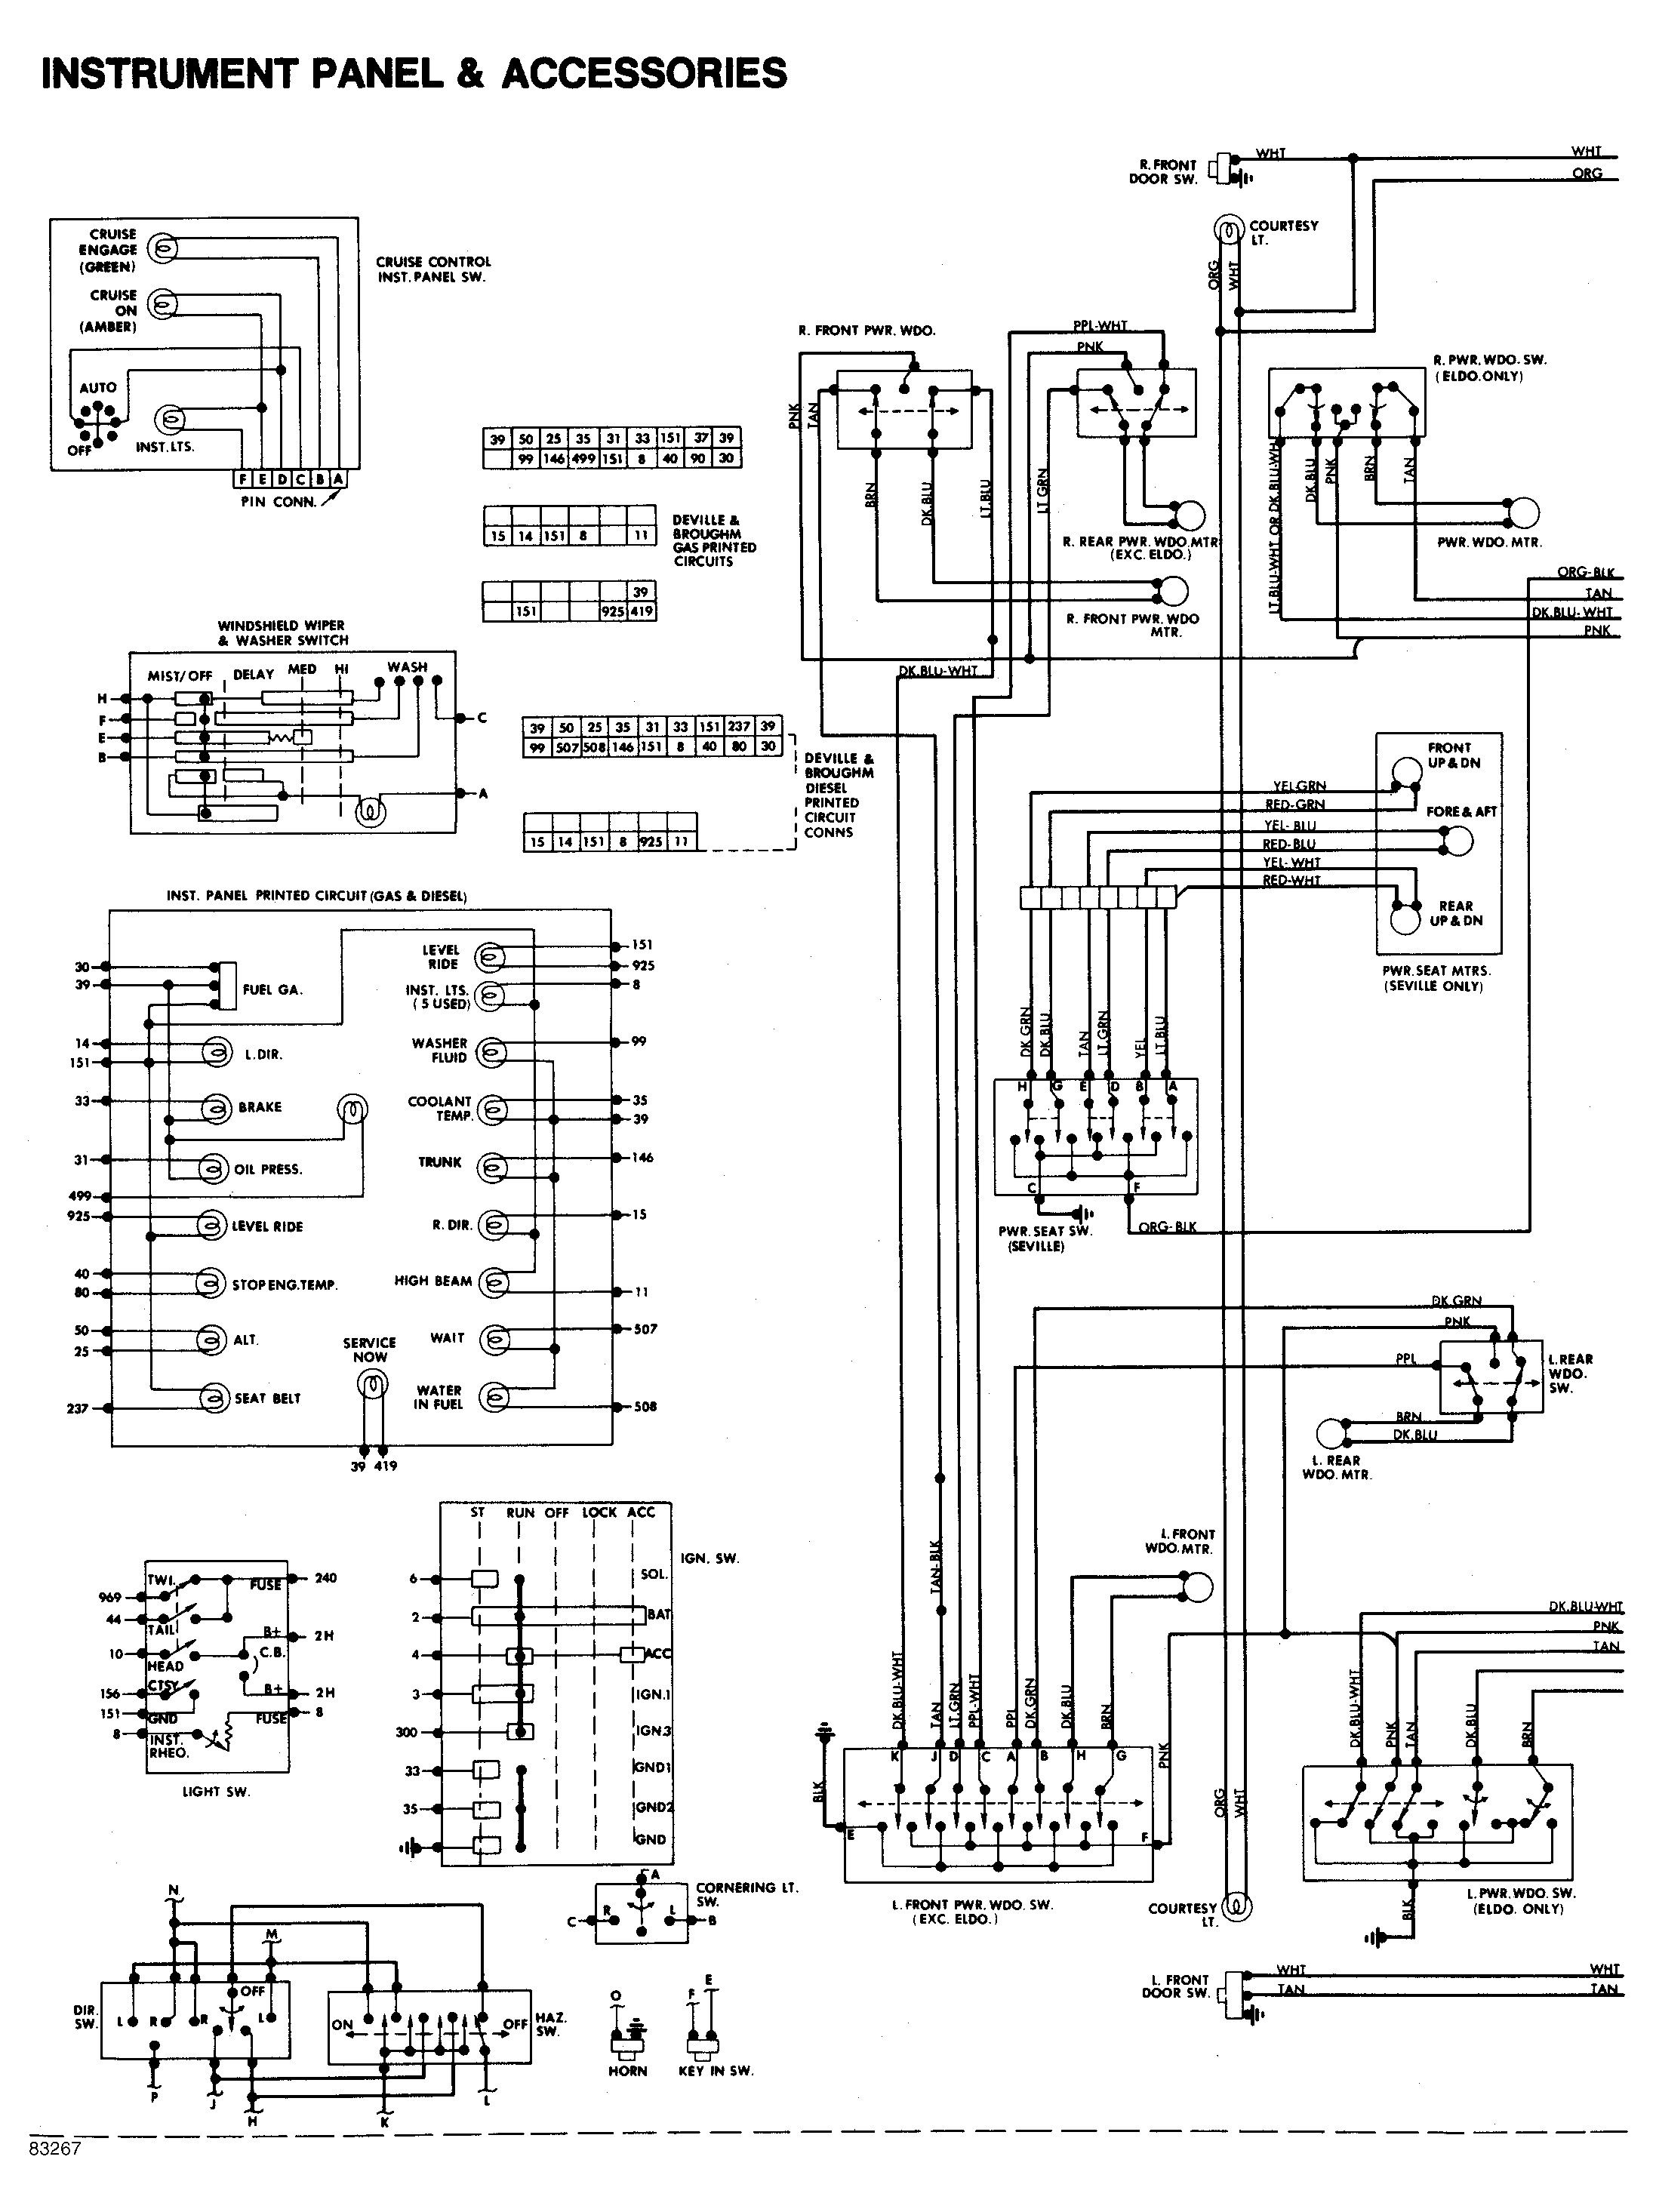 wire diagram ih scout wiring diagram new 2000 honda accord radio wiring diagram fresh daewoo leganza [ 2194 x 2931 Pixel ]